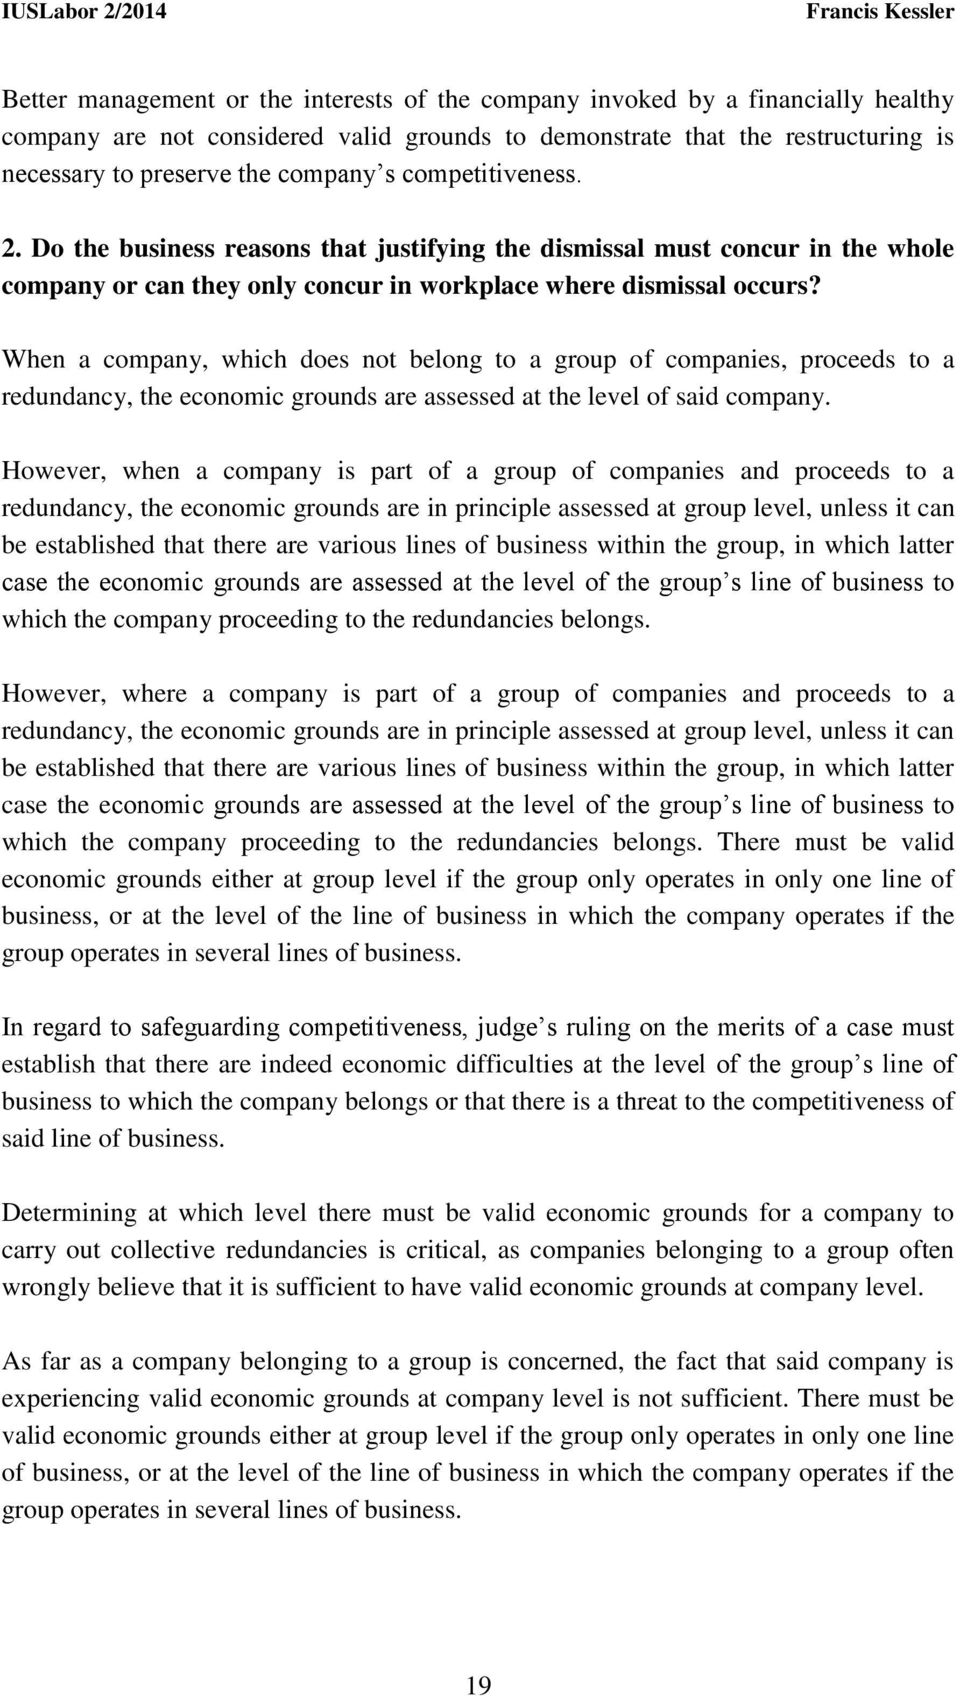 When a company, which does not belong to a group of companies, proceeds to a redundancy, the economic grounds are assessed at the level of said company.